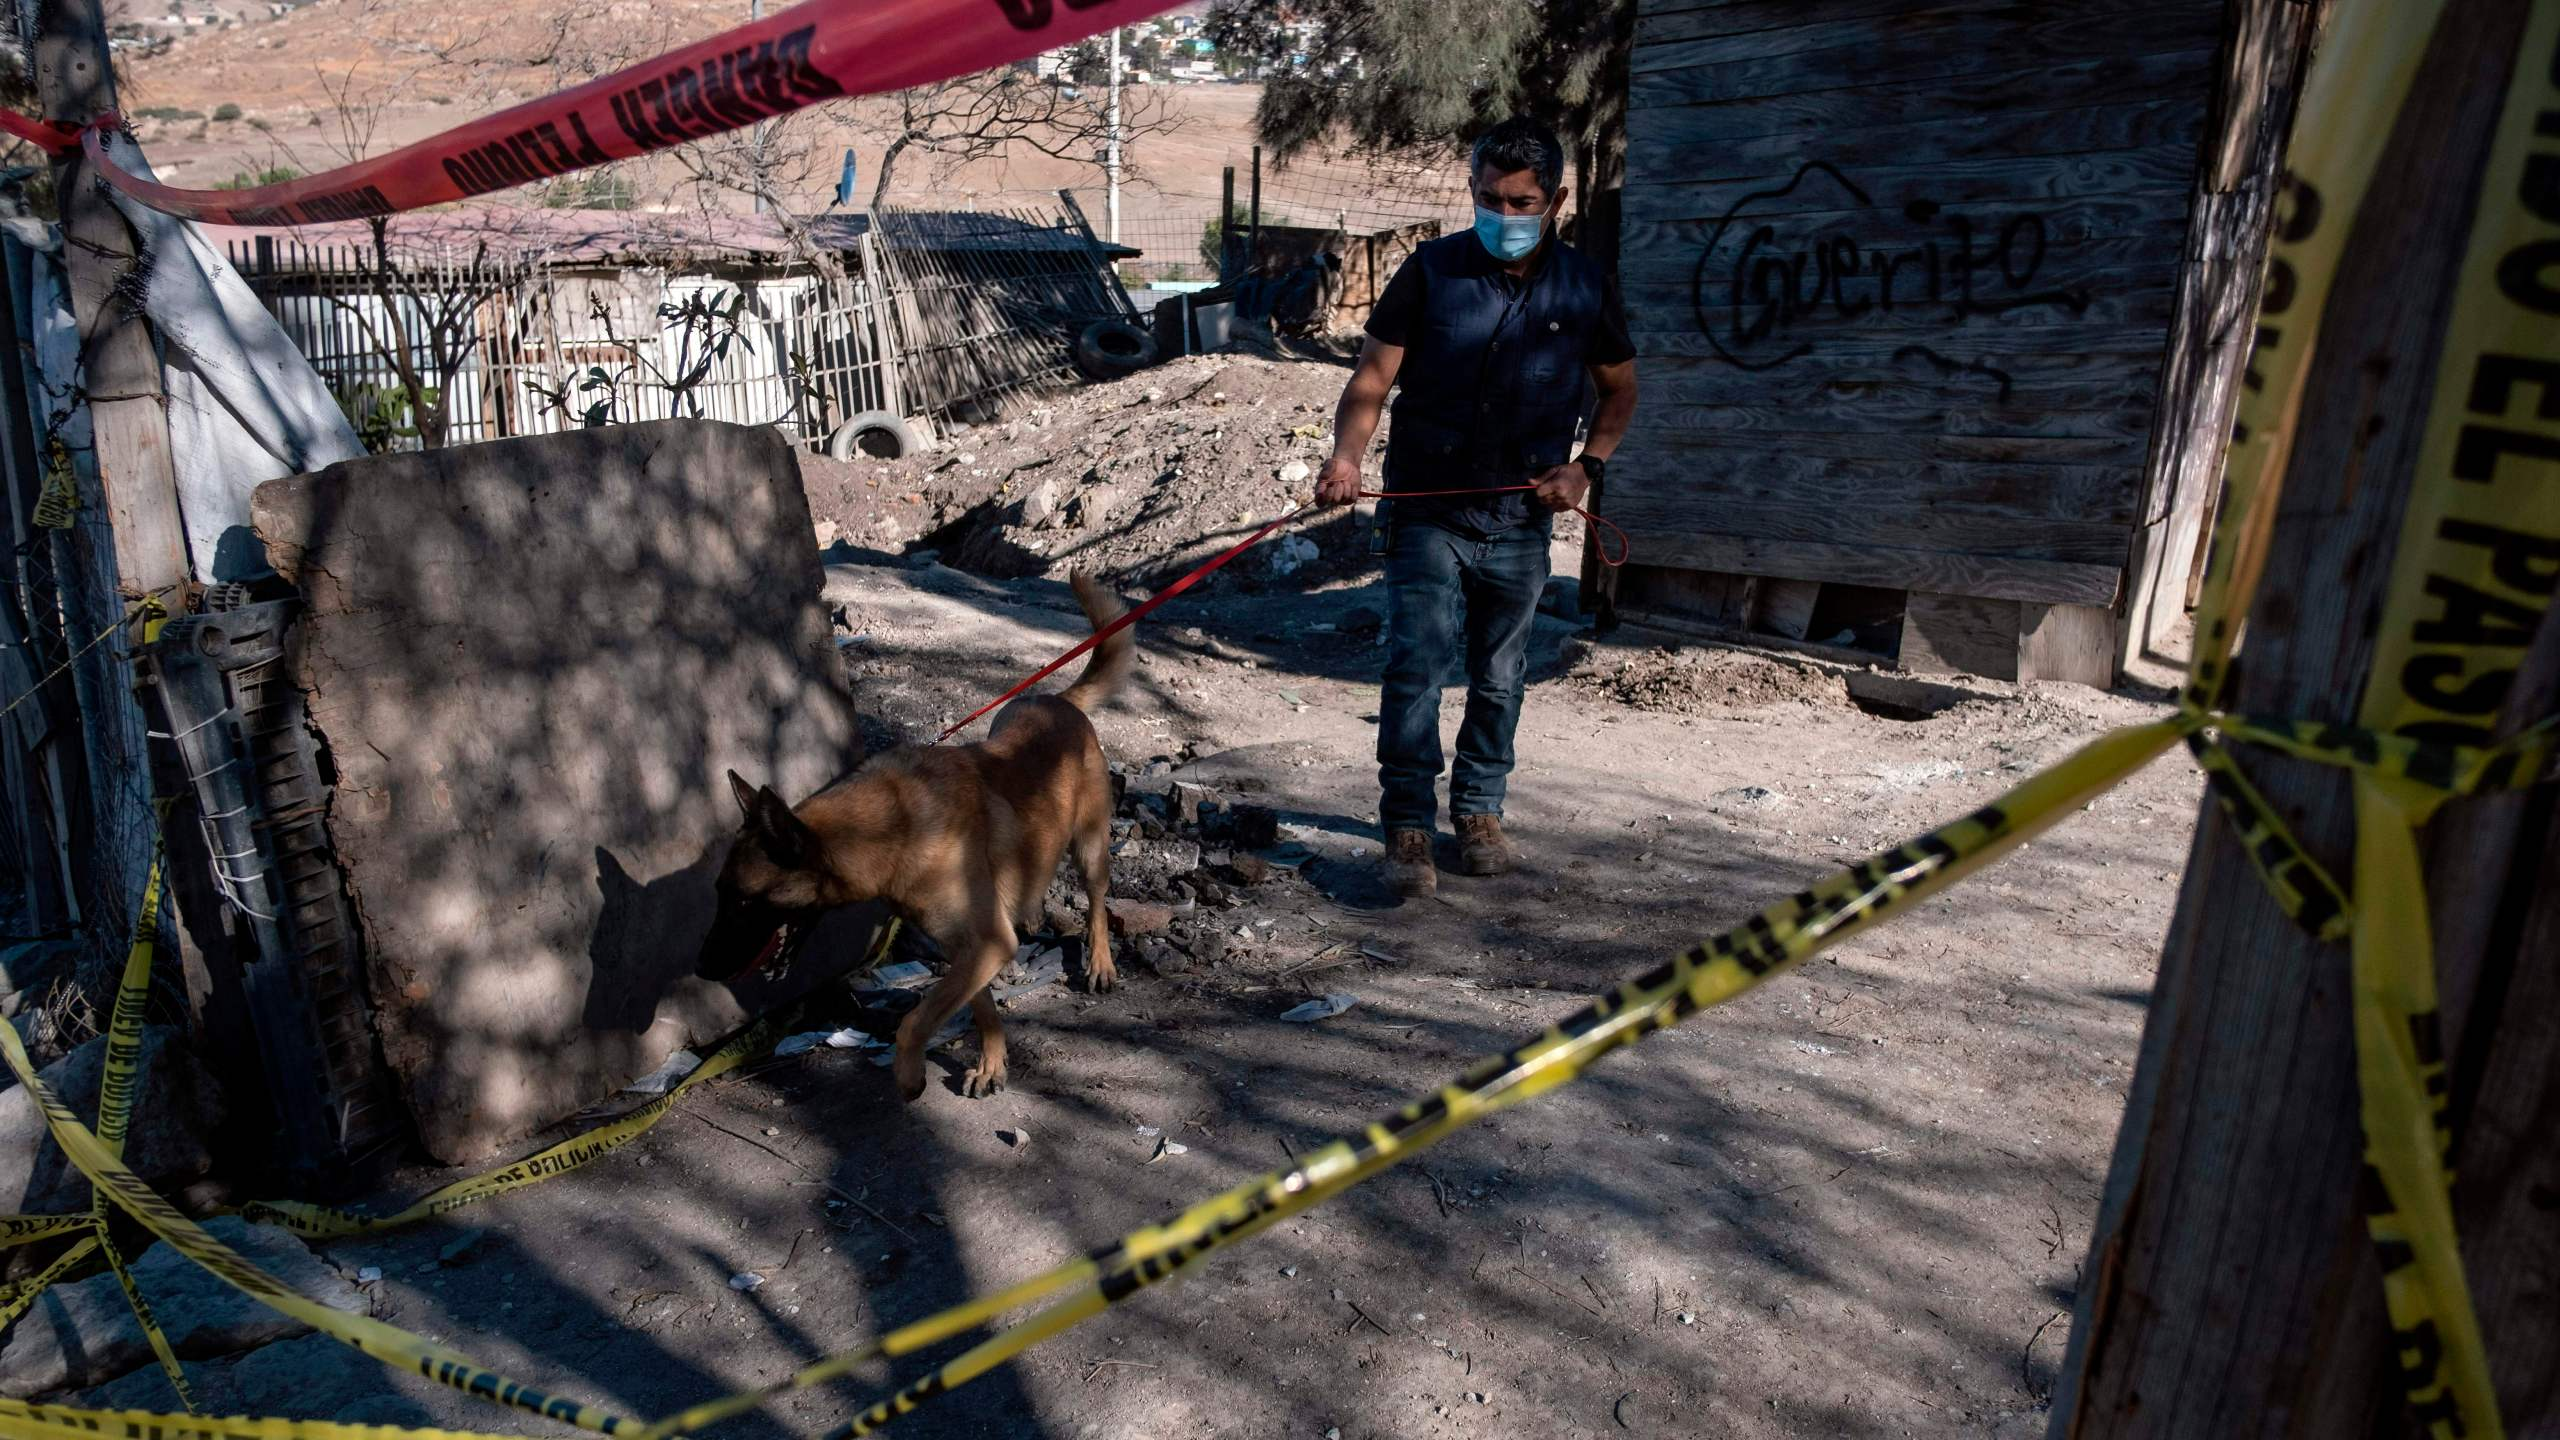 Julio Cesar Diaz, a volunteer dedicated to train dogs, walks with his dog looking for potential search spots as members of a group searching for missing people search human remains at a yard of a house located on the Maclovio Rojas area in Tijuana, Mexico, on January 10, 2021. (GUILLERMO ARIAS/AFP via Getty Images)